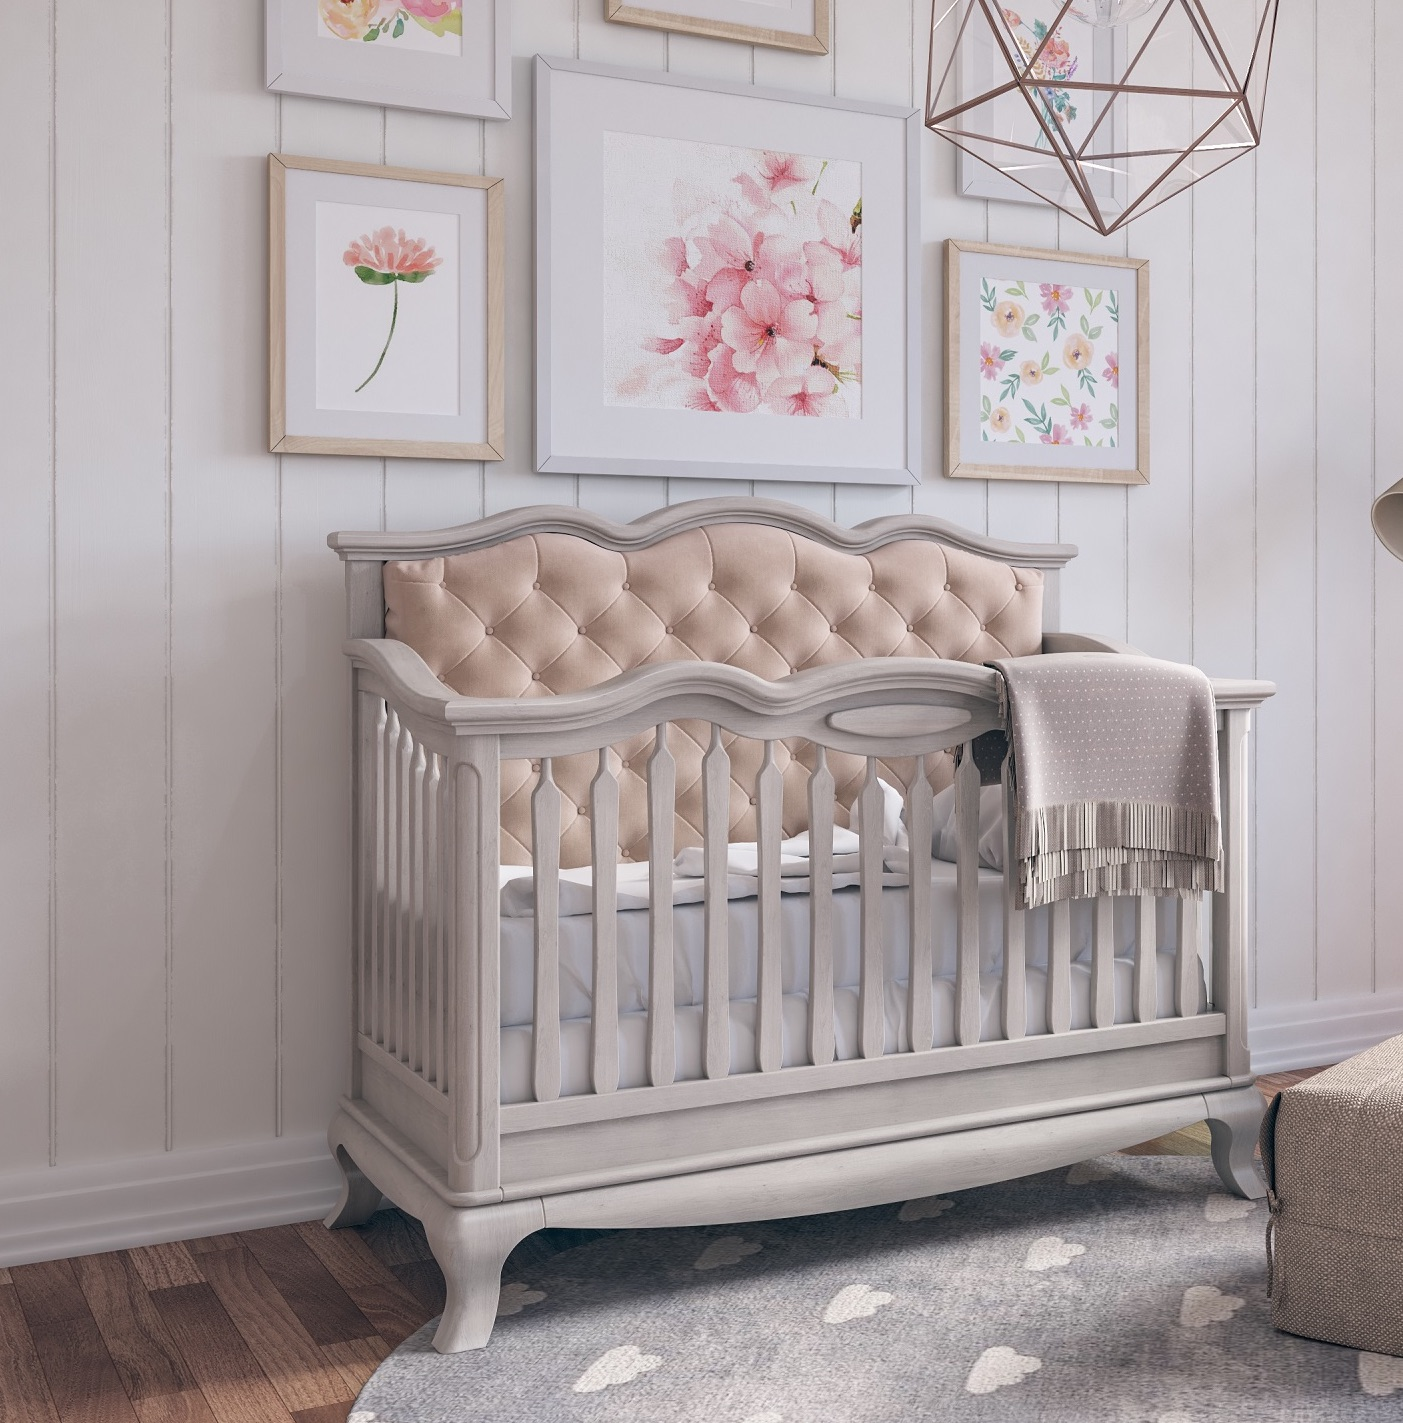 Romina Furniture Cleopatra Tufted Crib + Double - Stardust